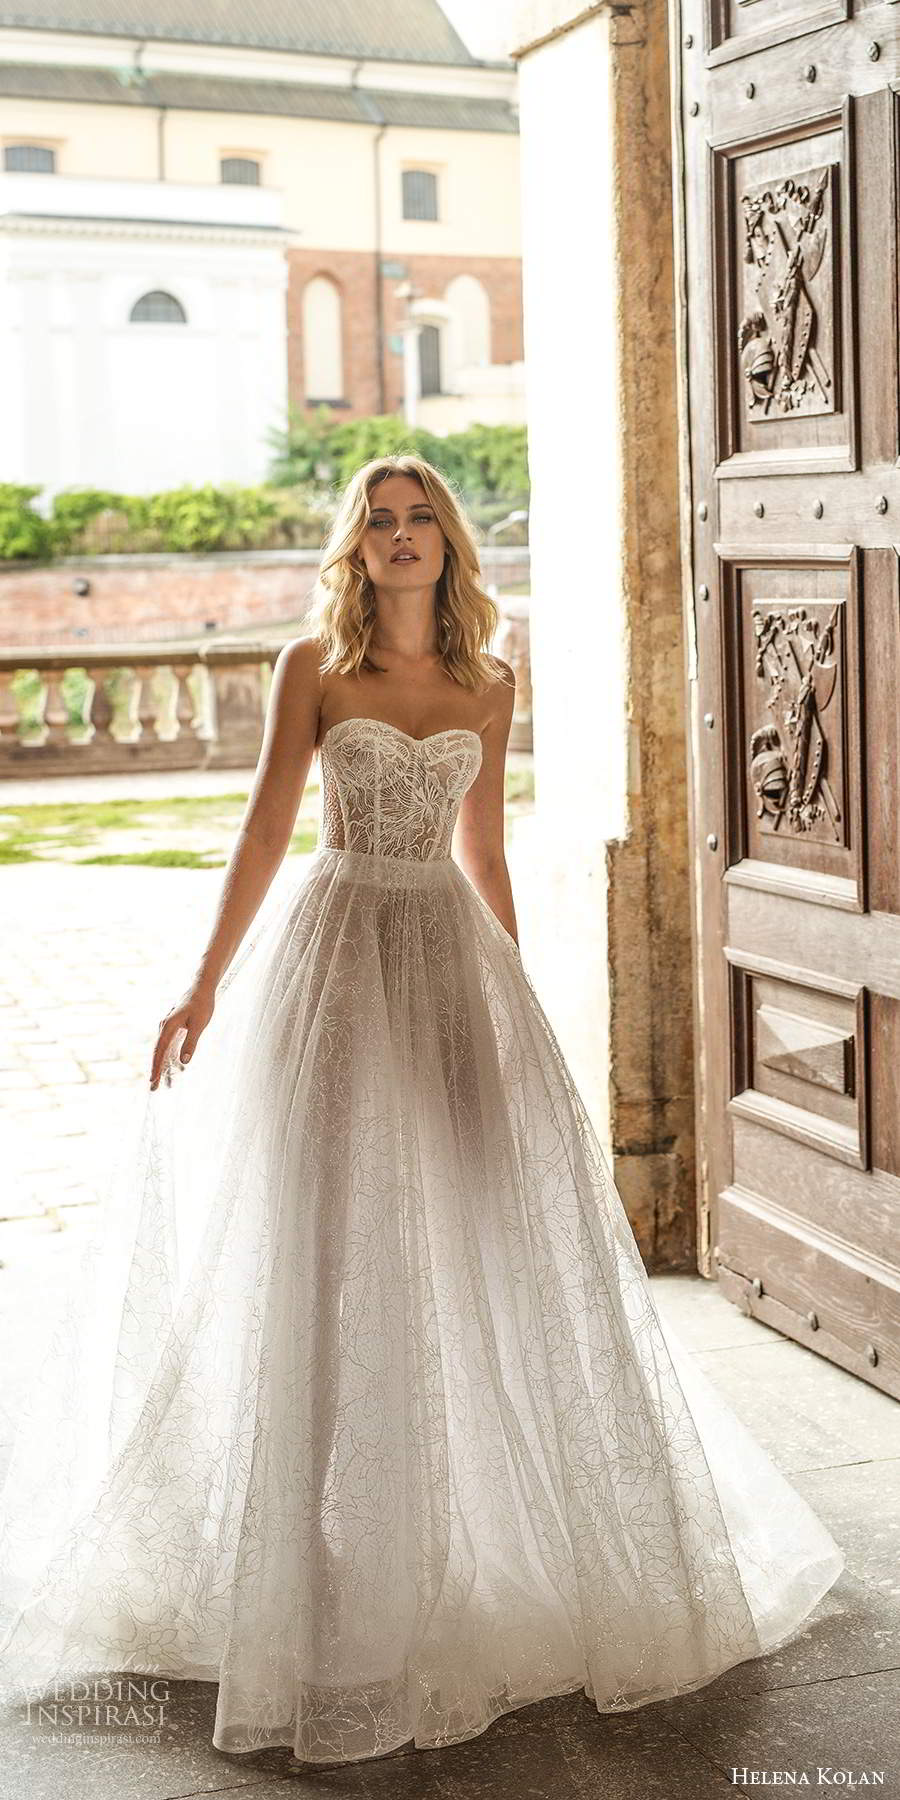 helena kolan 2020 bridal strapless sweetheart sheer corset bodice fully embellished lace a line ball gown wedding dress sheer back chapel train (8) mv